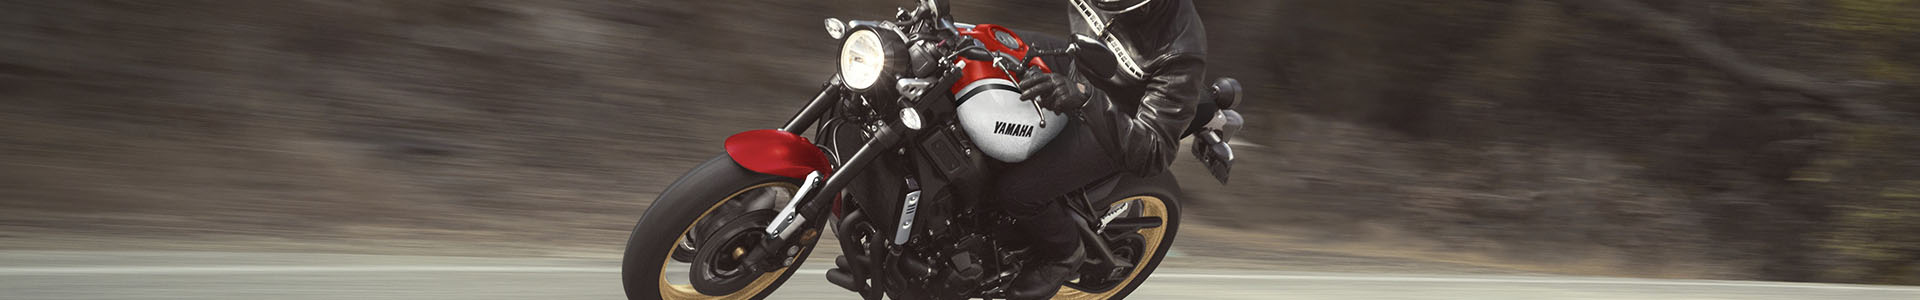 https://www.yamahas.nz/i/Images/Models/Headers/XSR900Banner_1.jpg